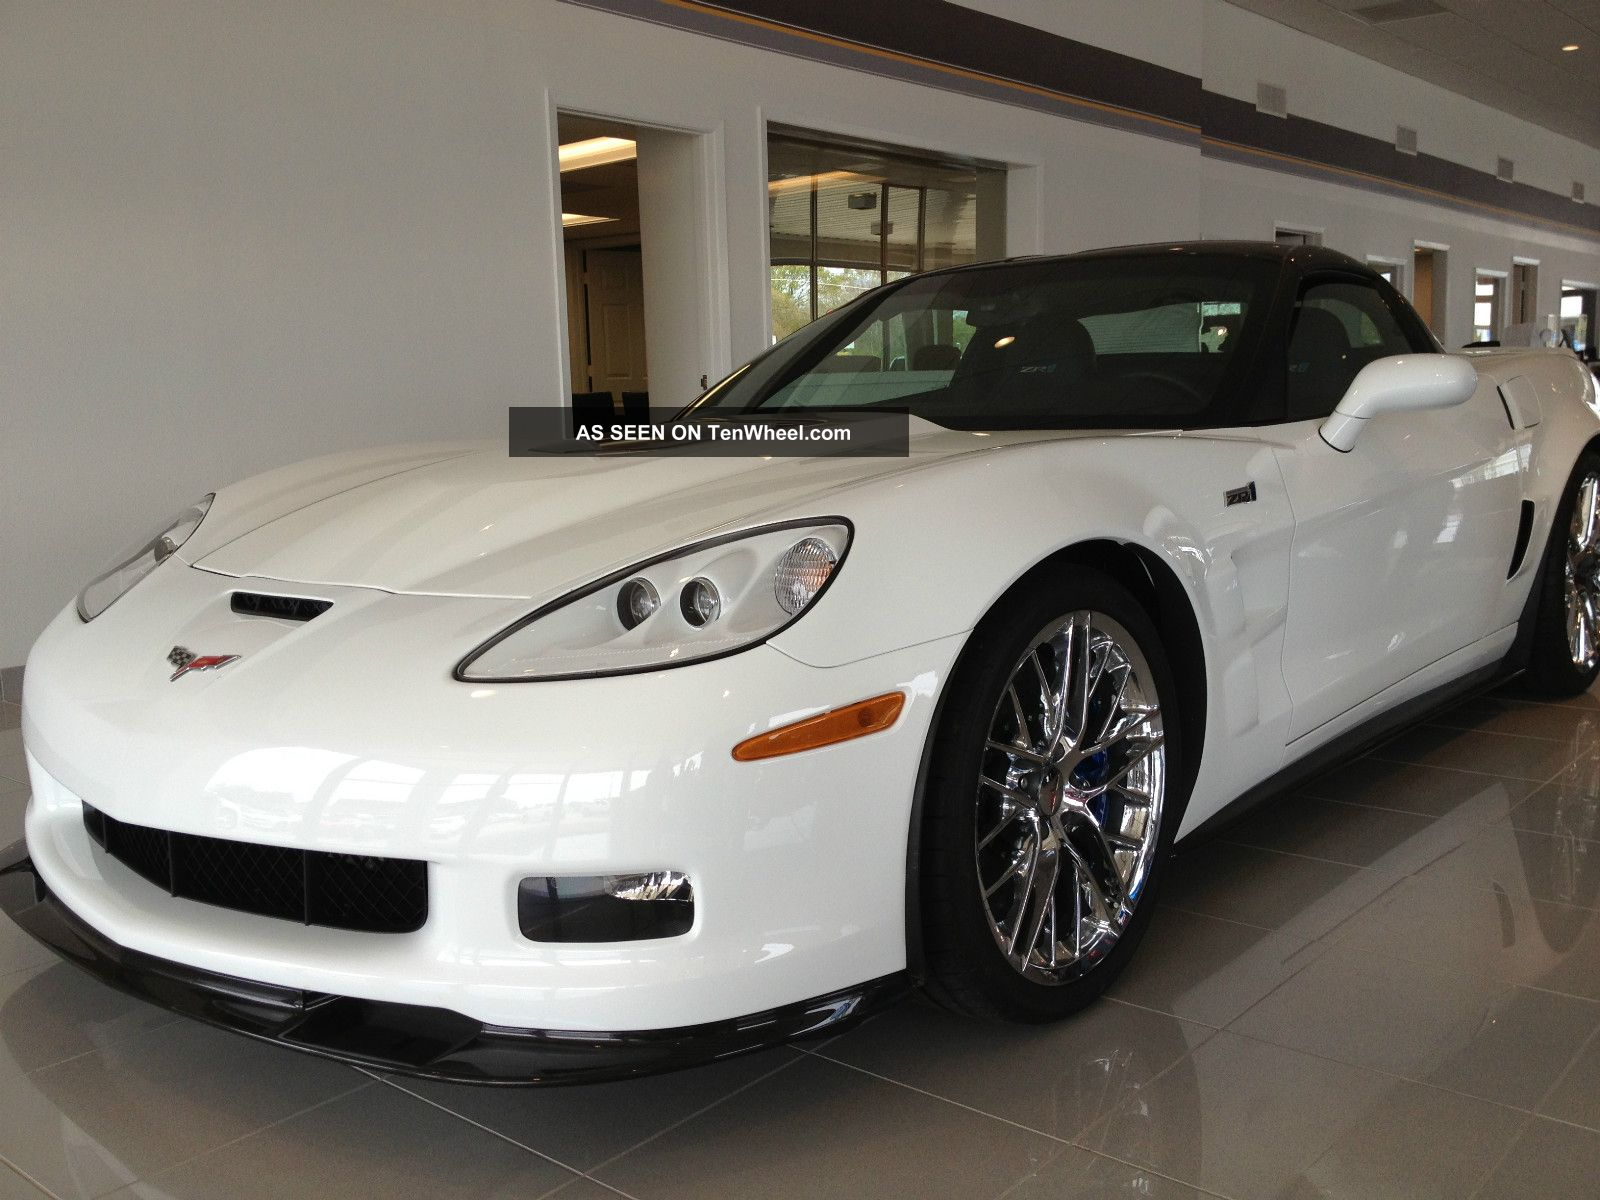 2013 chevrolet corvette specs 2 door coupe zr1 3zr html. Black Bedroom Furniture Sets. Home Design Ideas